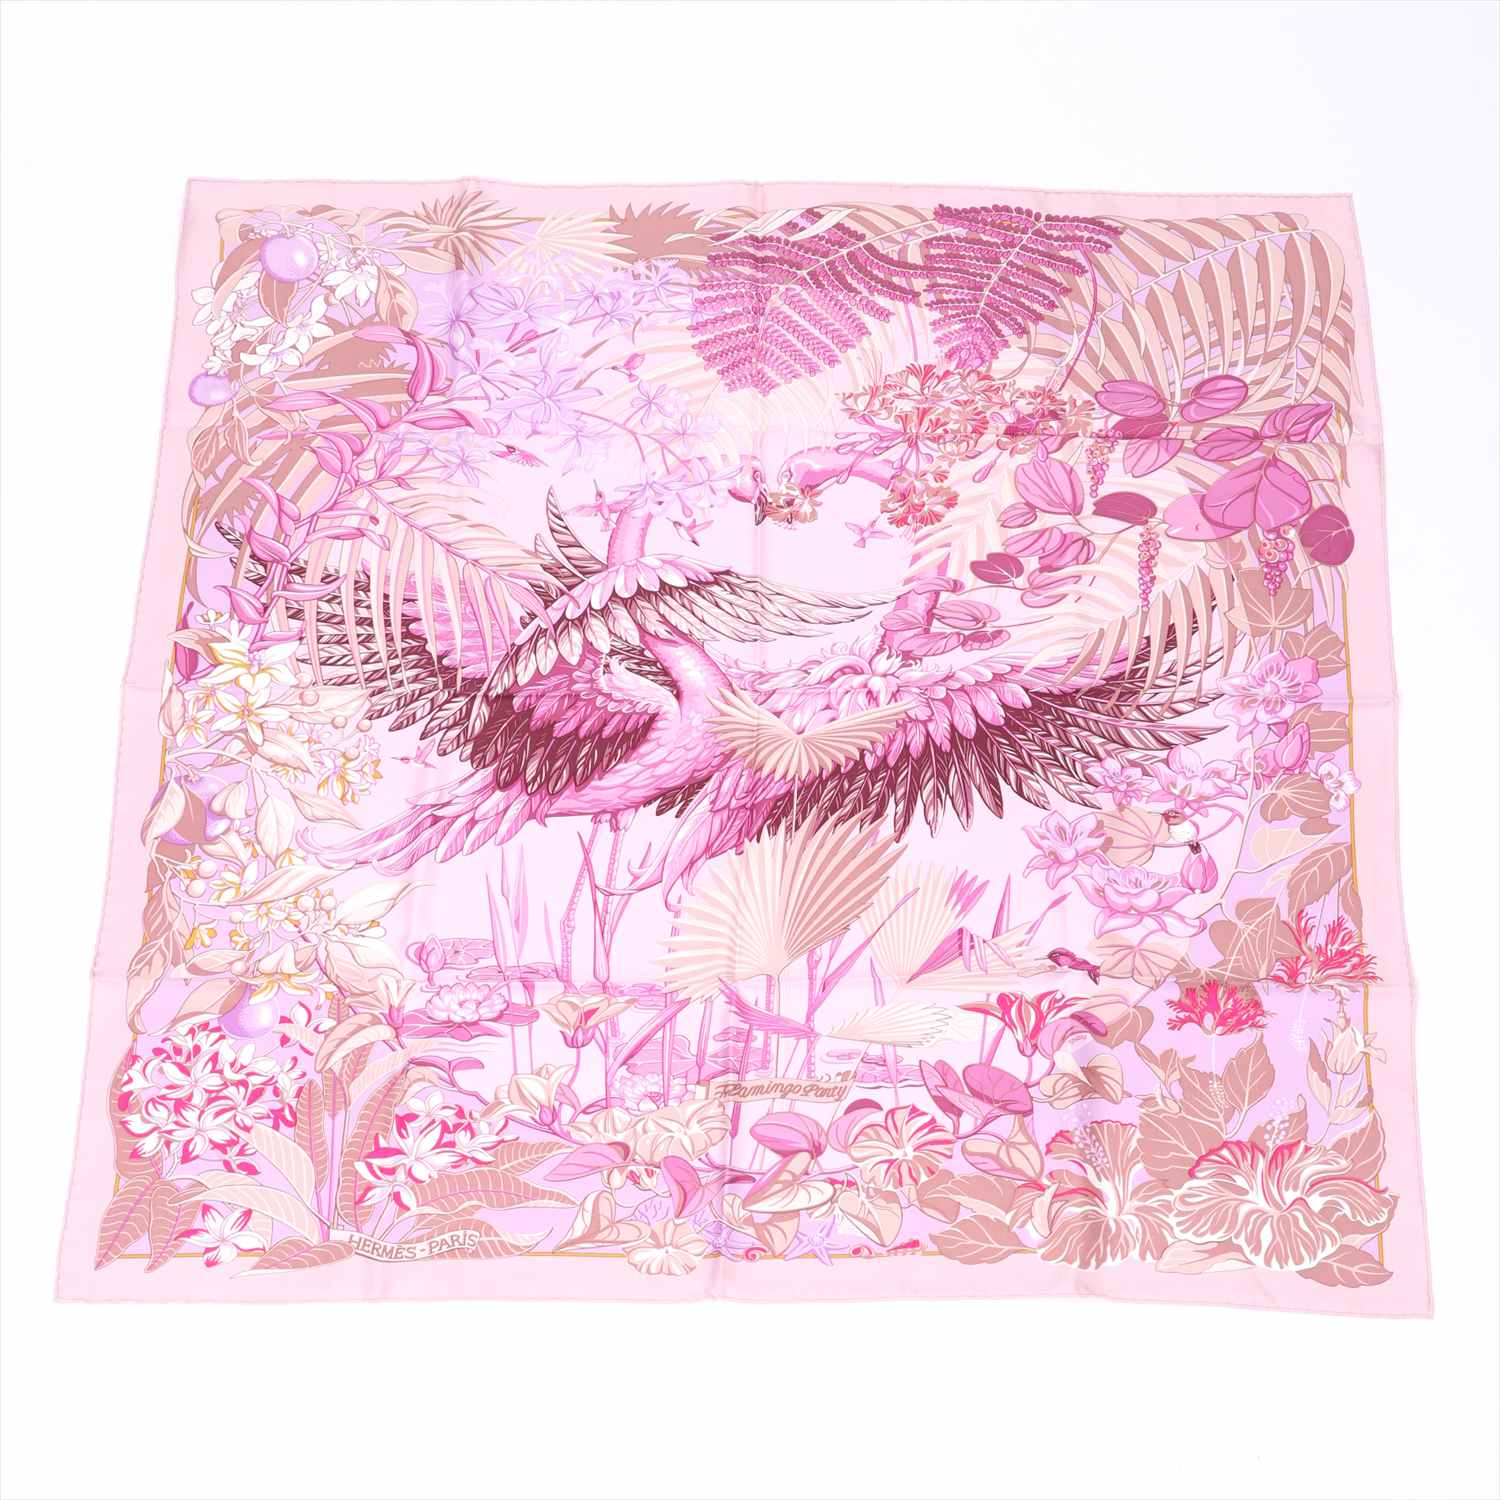 [Used goods] Hermes Carre 90 scarf silk purple Flamingo Party (Flamingo Party)